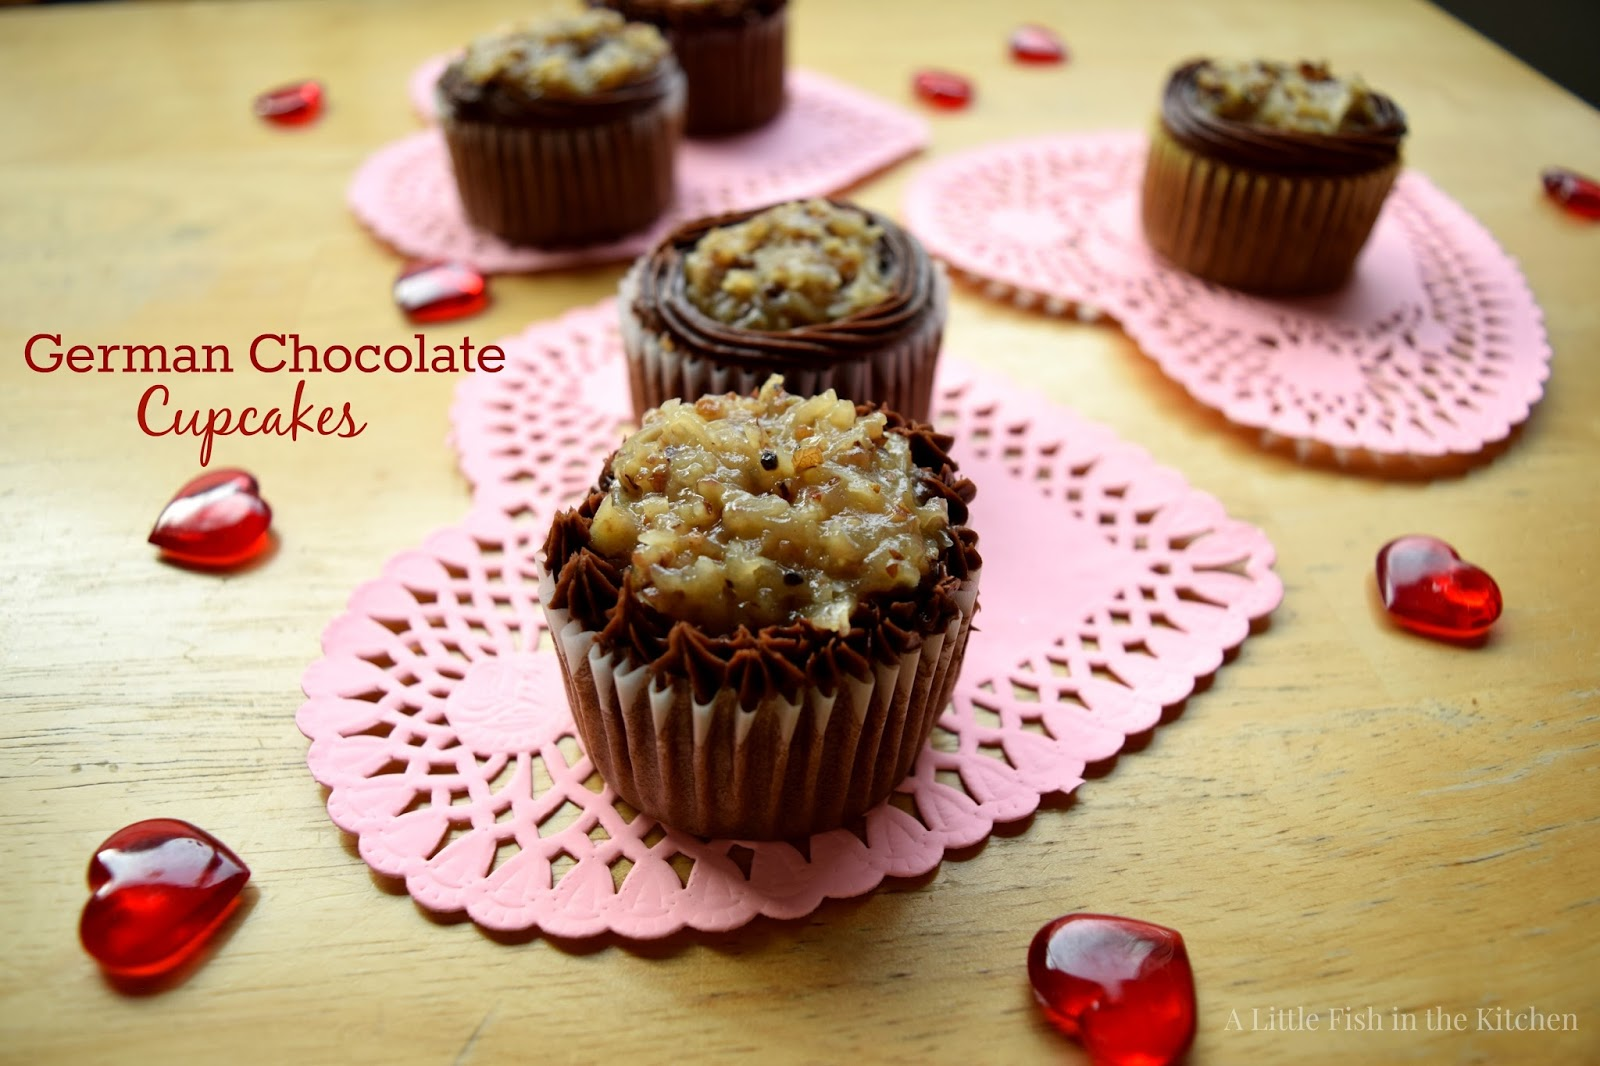 German Chocolate Cupcakes - A Little Fish in the Kitchen